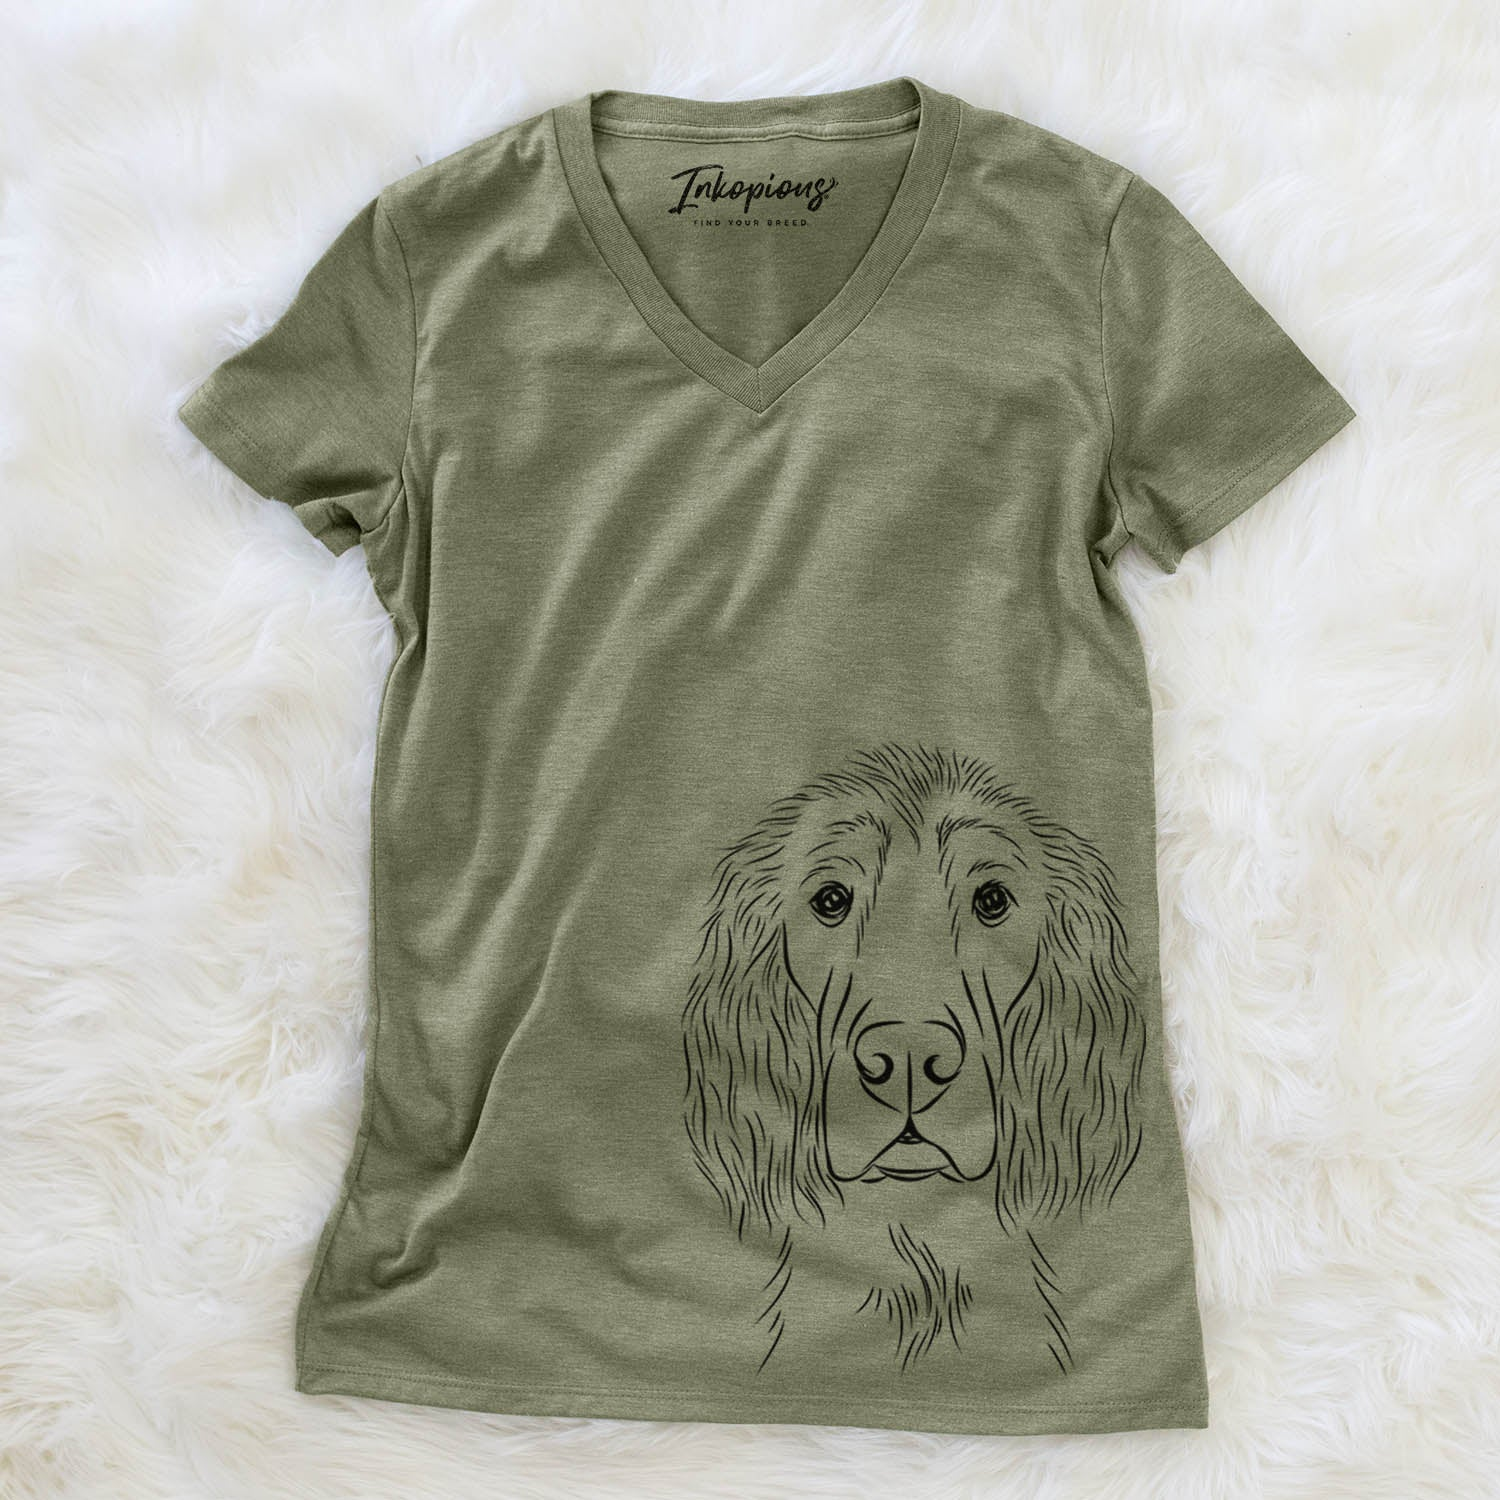 Piper the Irish Setter - Women's Modern Fit V-neck Shirt